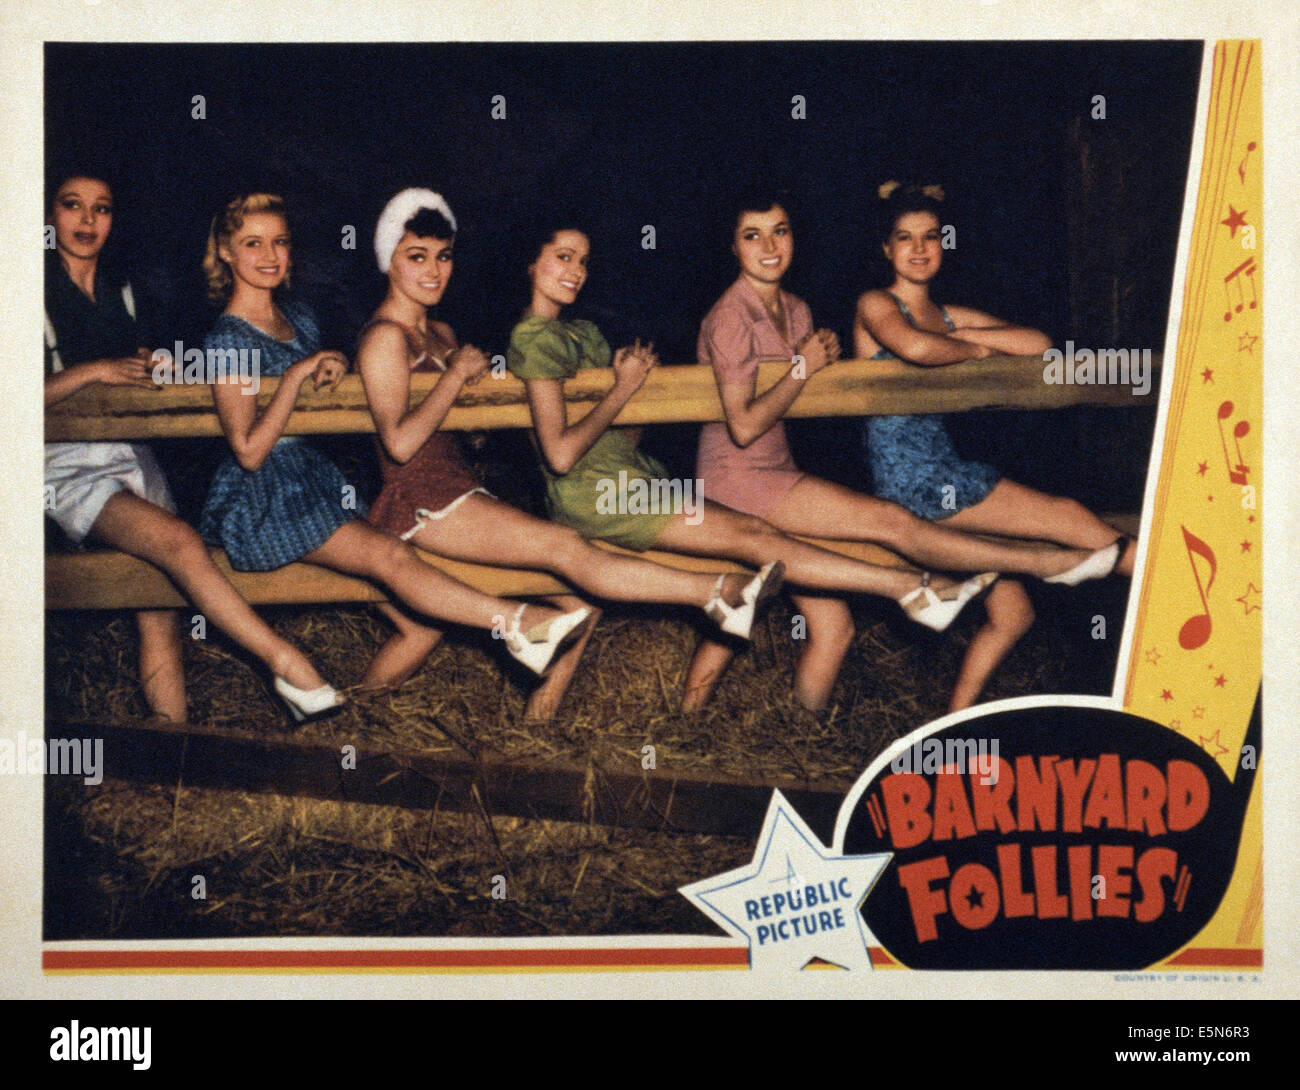 BARNYARD FOLLIES, 1940 - Stock Image